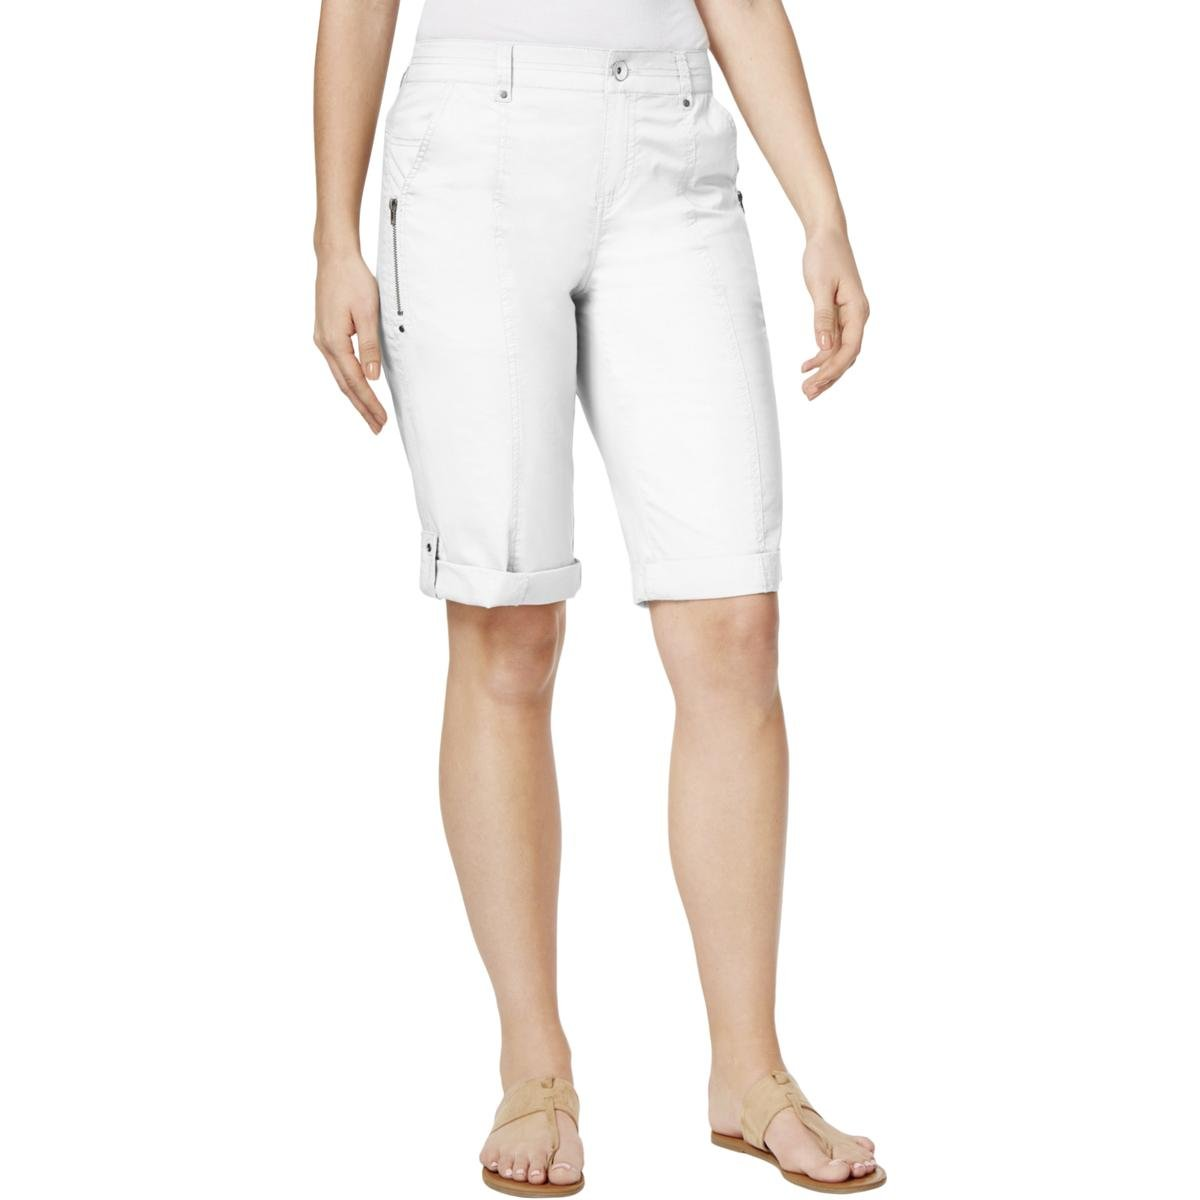 Style & Co.. Womens Petites Mid-Rise Adjustable Bermuda Shorts White 4P